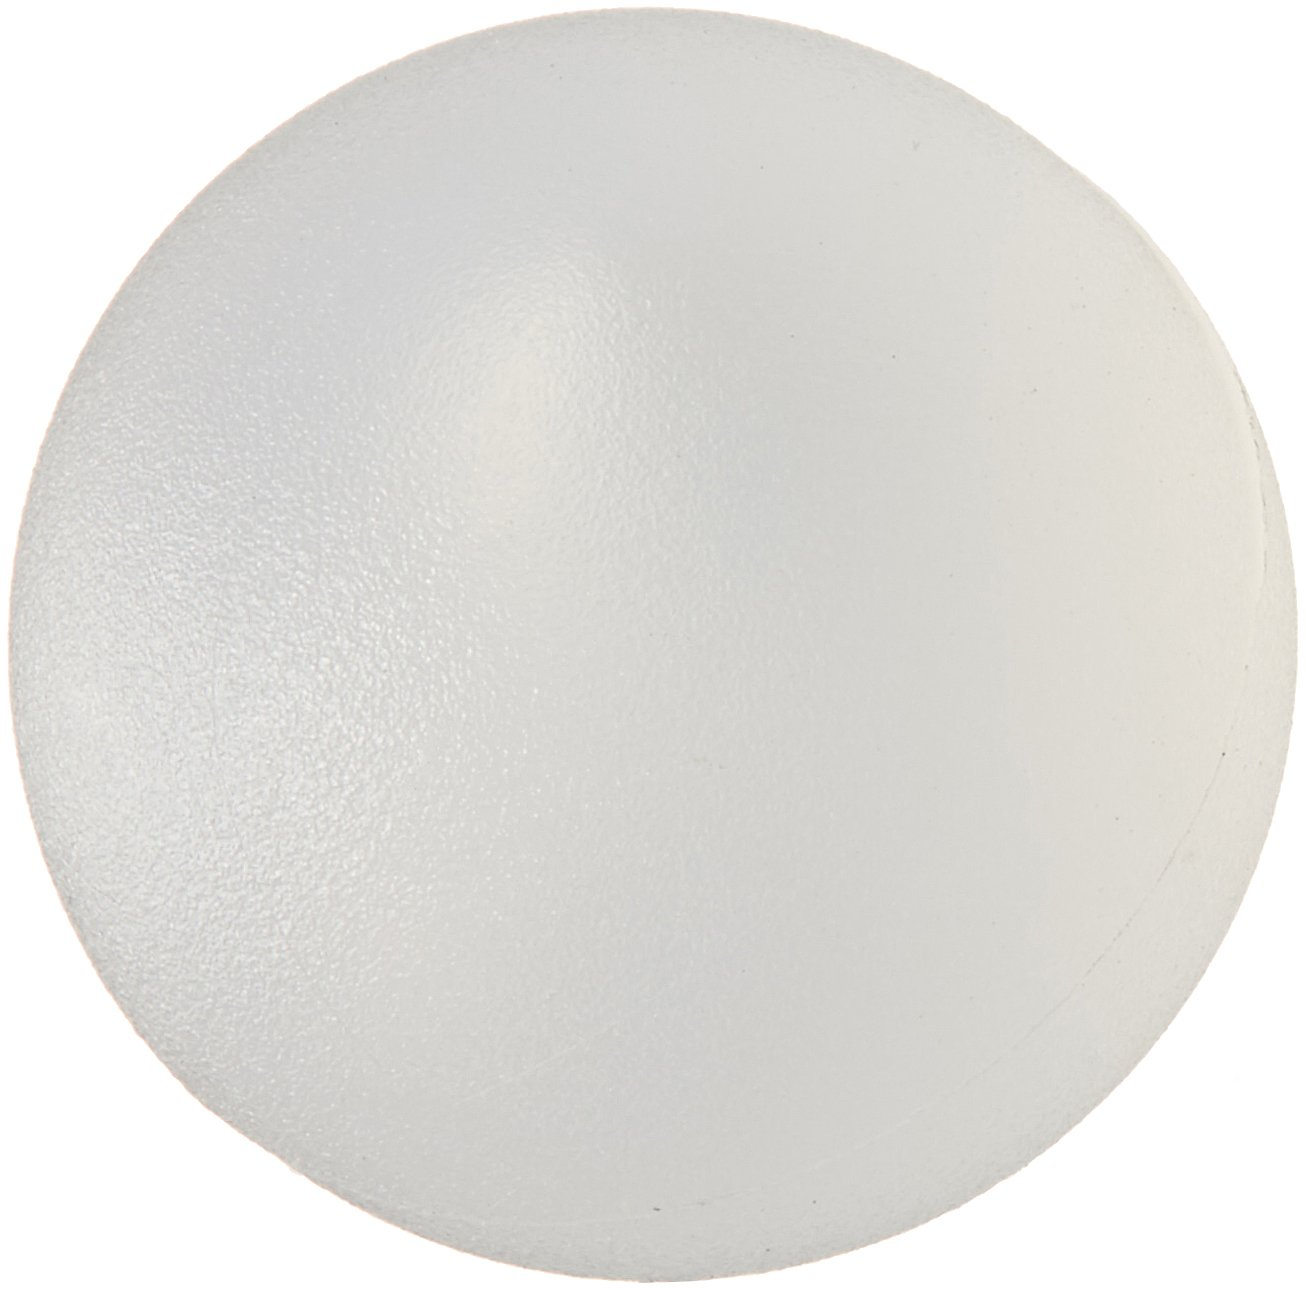 Techne 4010100 PP-10 Polypropylene Sphere for Baths, 3/8'' Diameter (Pack of 5,000) by Techne (Image #1)